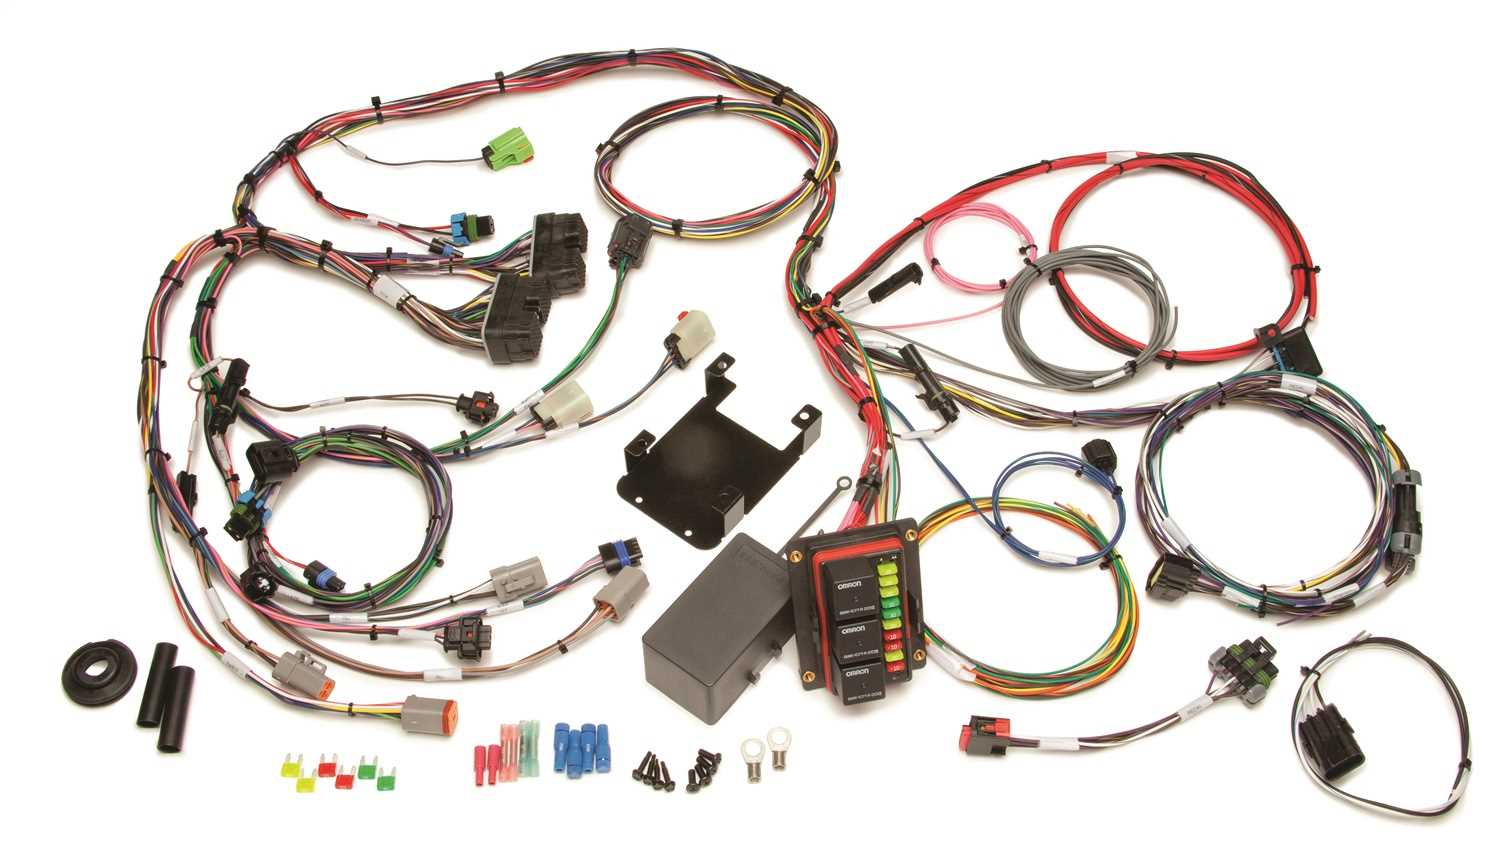 60250 Painless Wiring Engine Wiring Harness 60250 on painless switch panel, painless fuse box, painless lt1 harness,